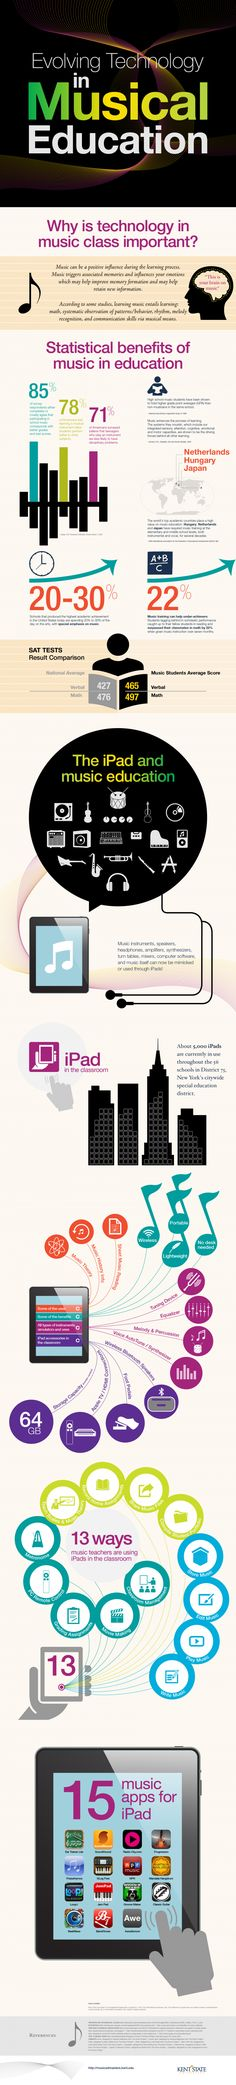 Evolving Technology in Music Education Infographic #Infographics